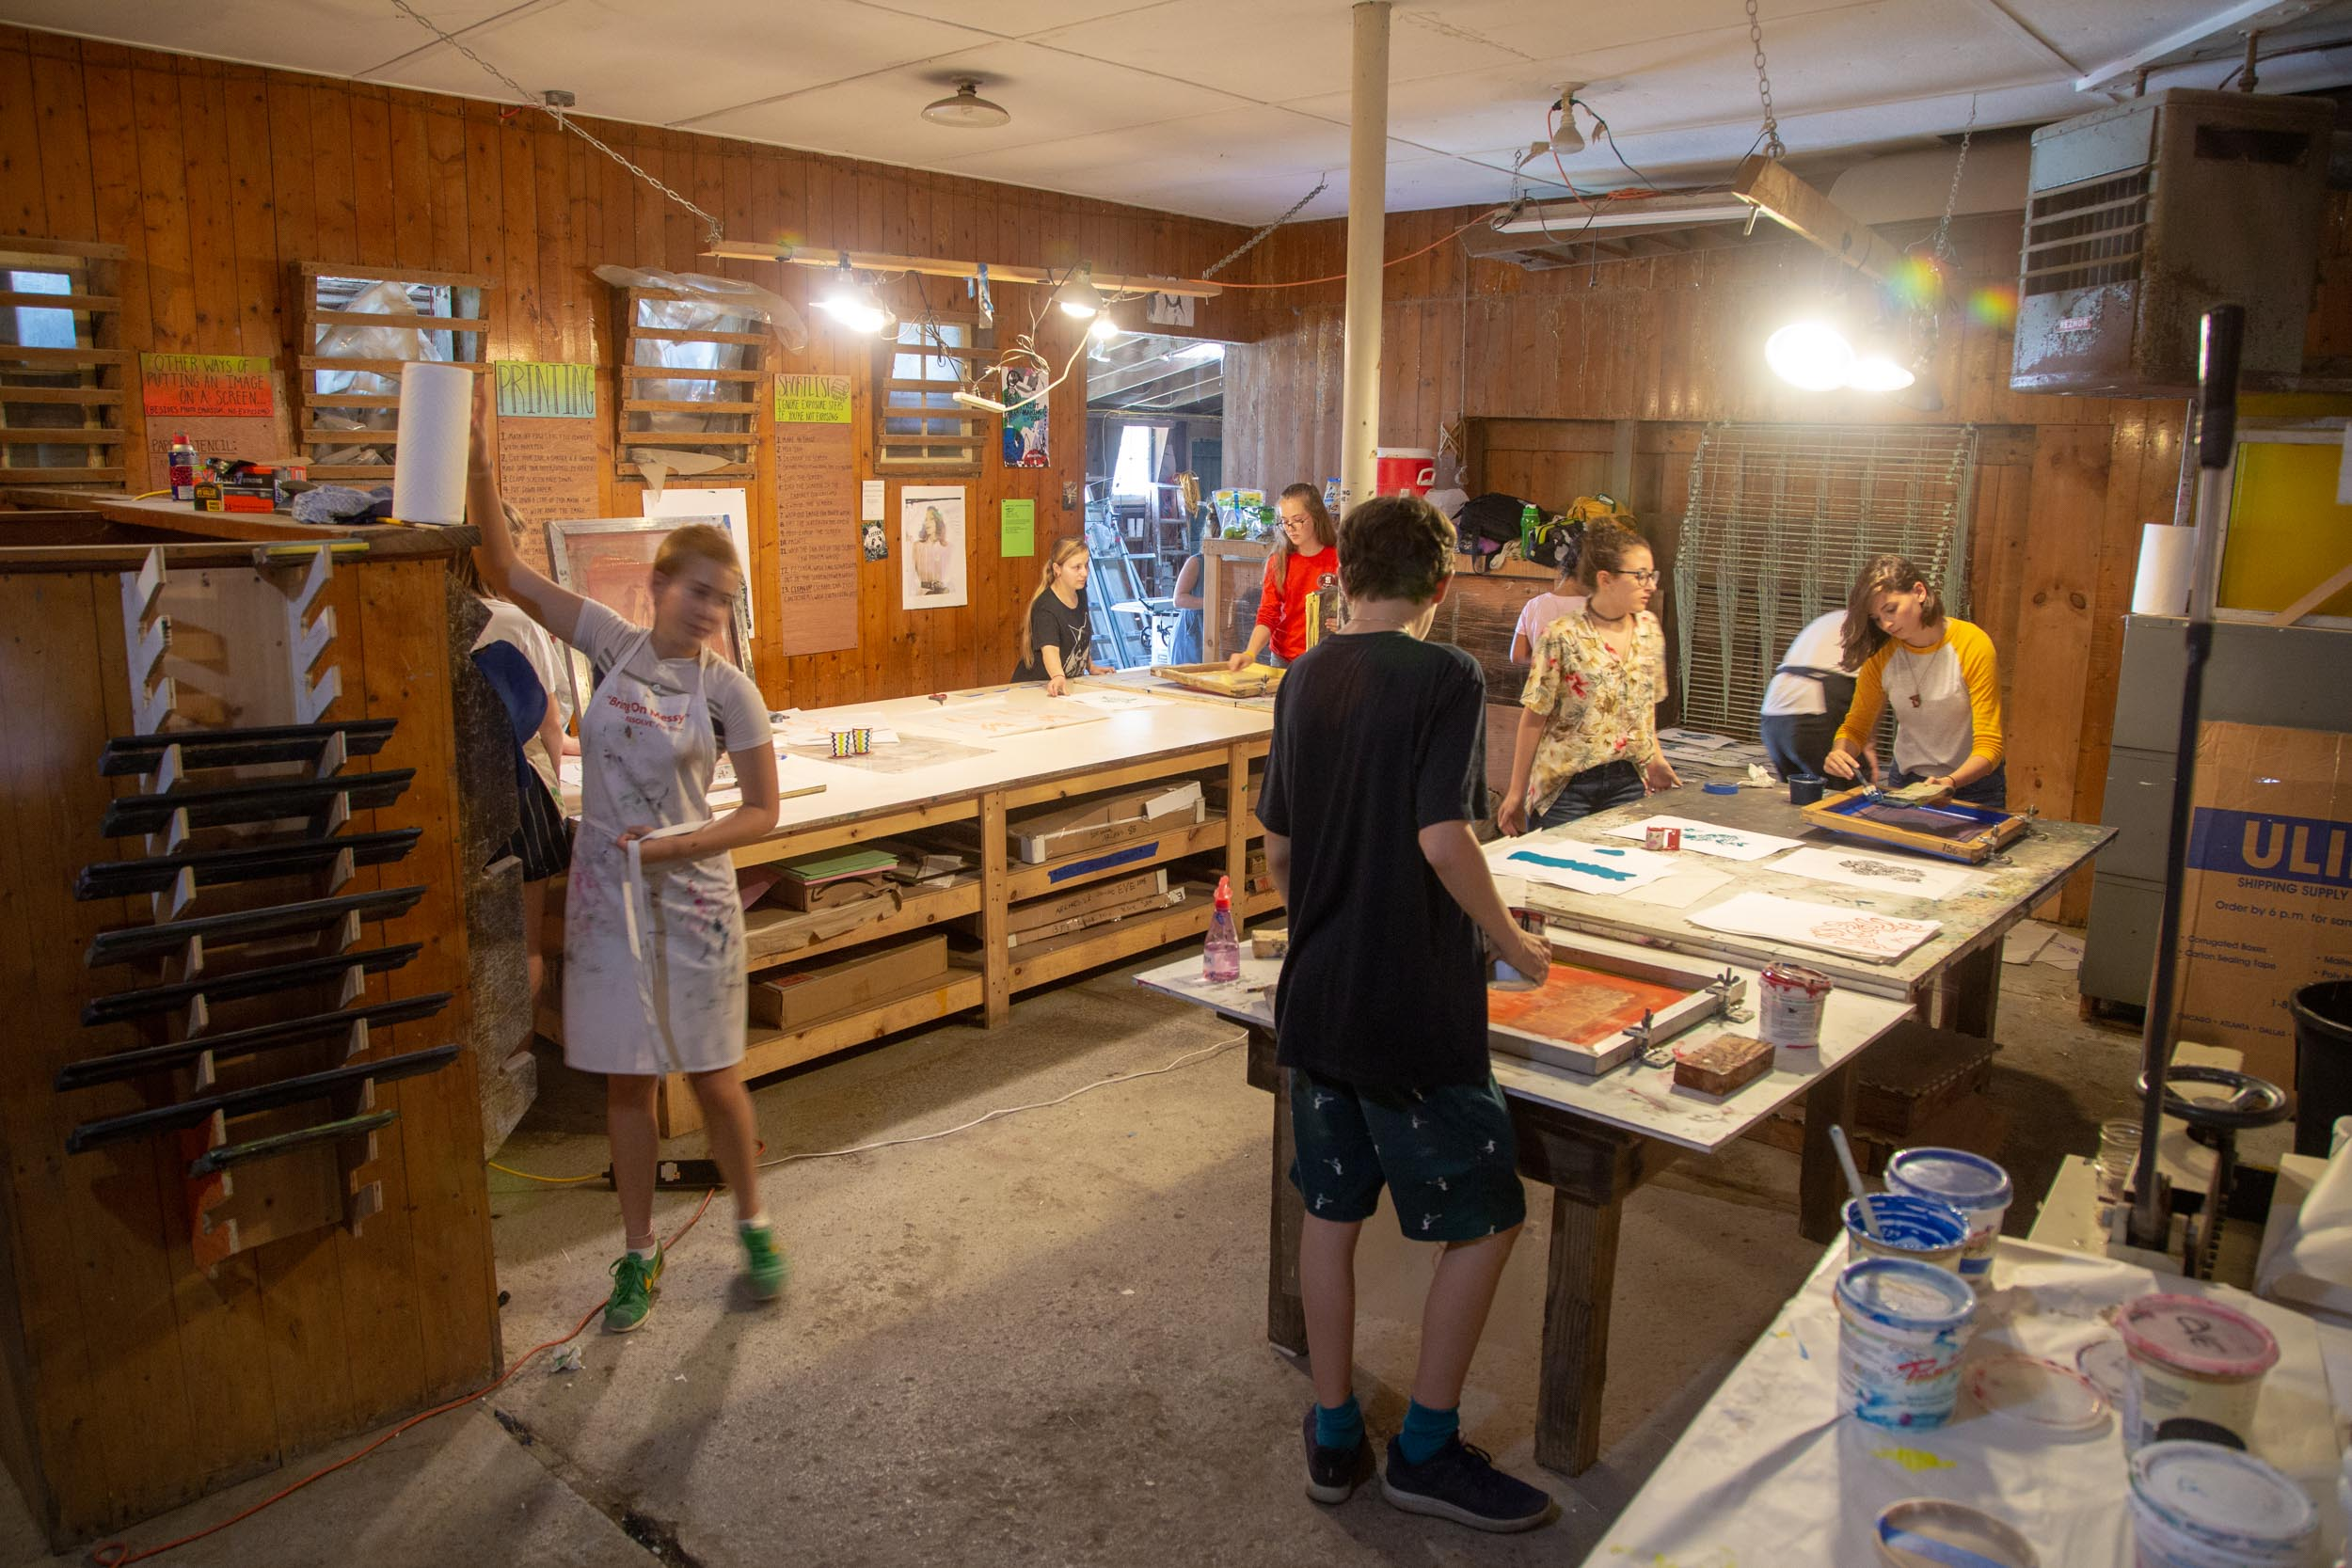 wassaic-project-education-teen-screenprinting-camp-2018-08-16-14-23-59.jpg